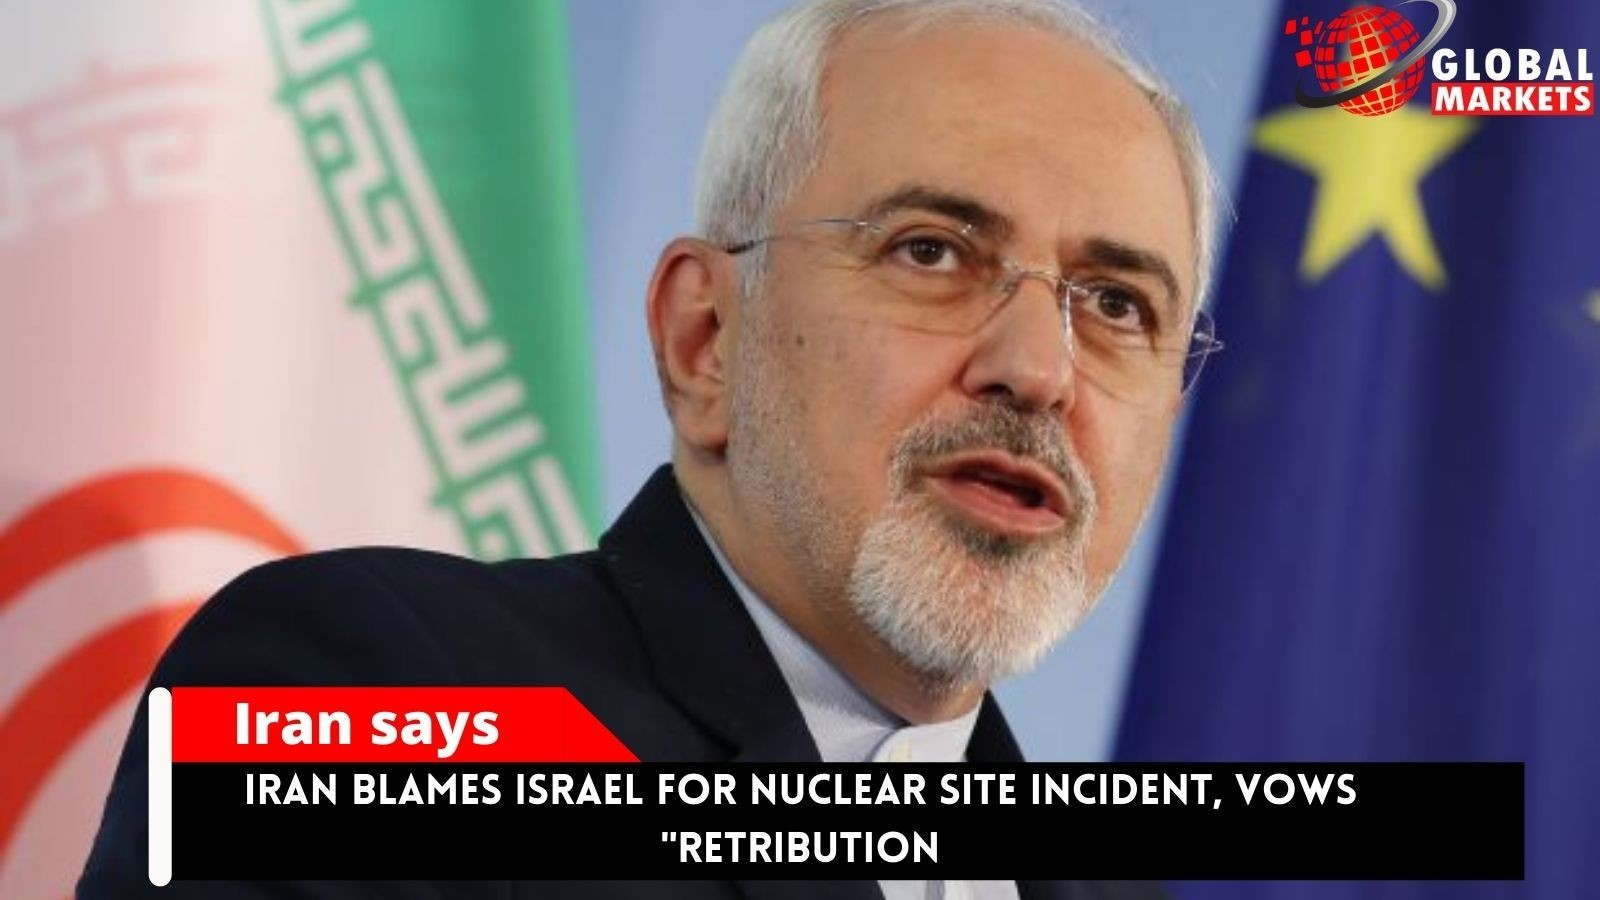 Iran Blames Israel For Nuclear Site Incident, Vows